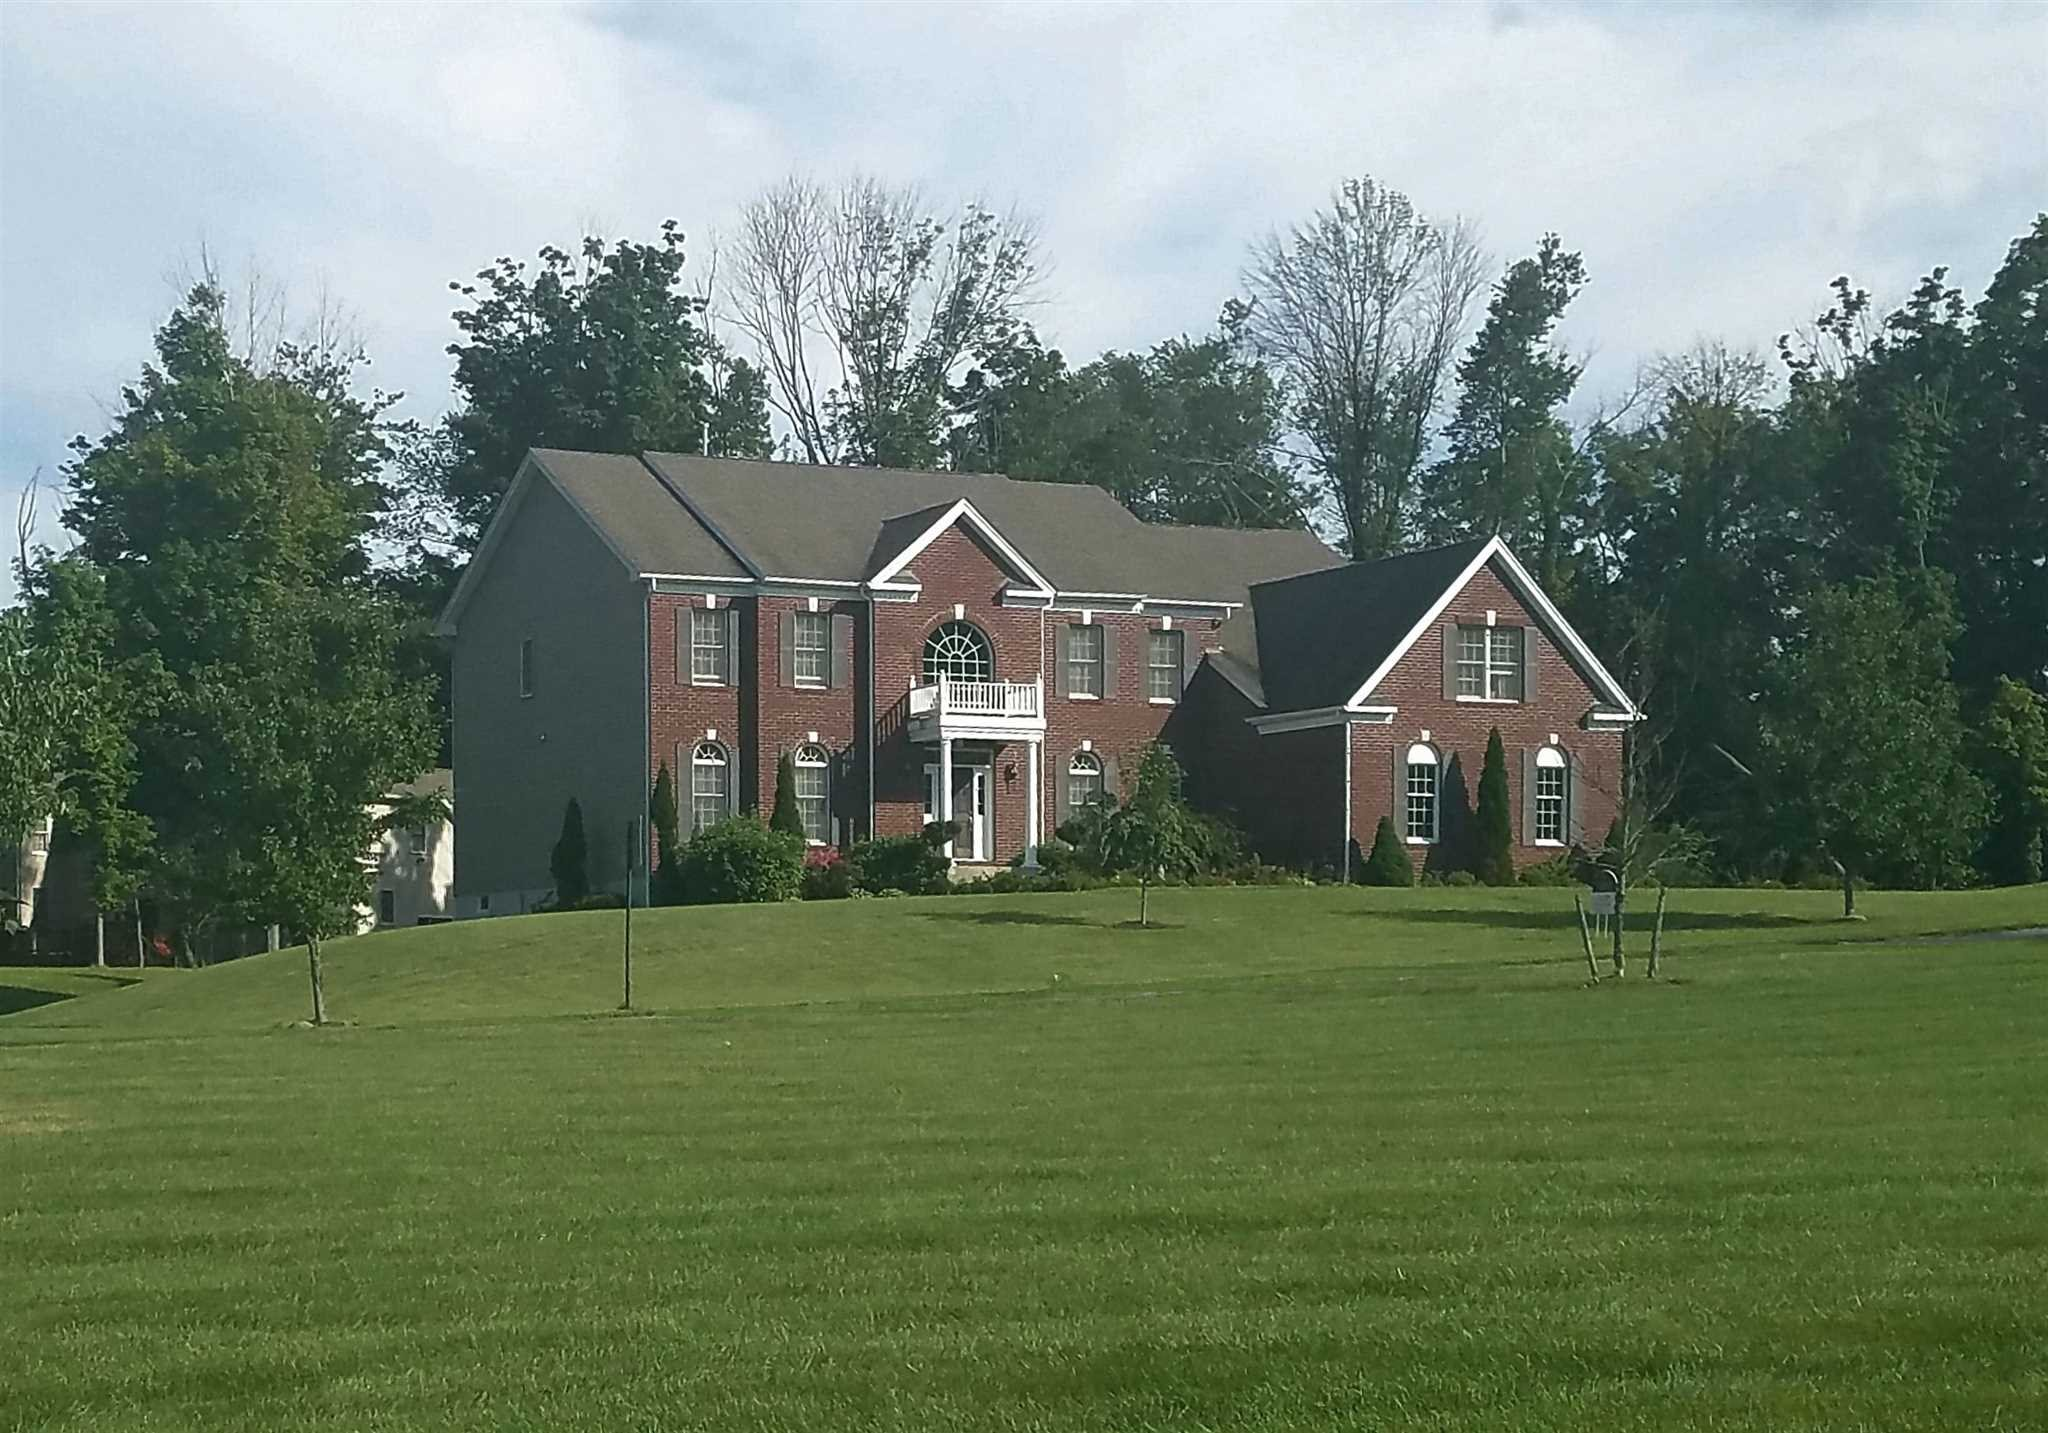 Single Family Home for Sale at 10 SHAMROCK HILLS Drive 10 SHAMROCK HILLS Drive Wappinger, New York 12590 United States